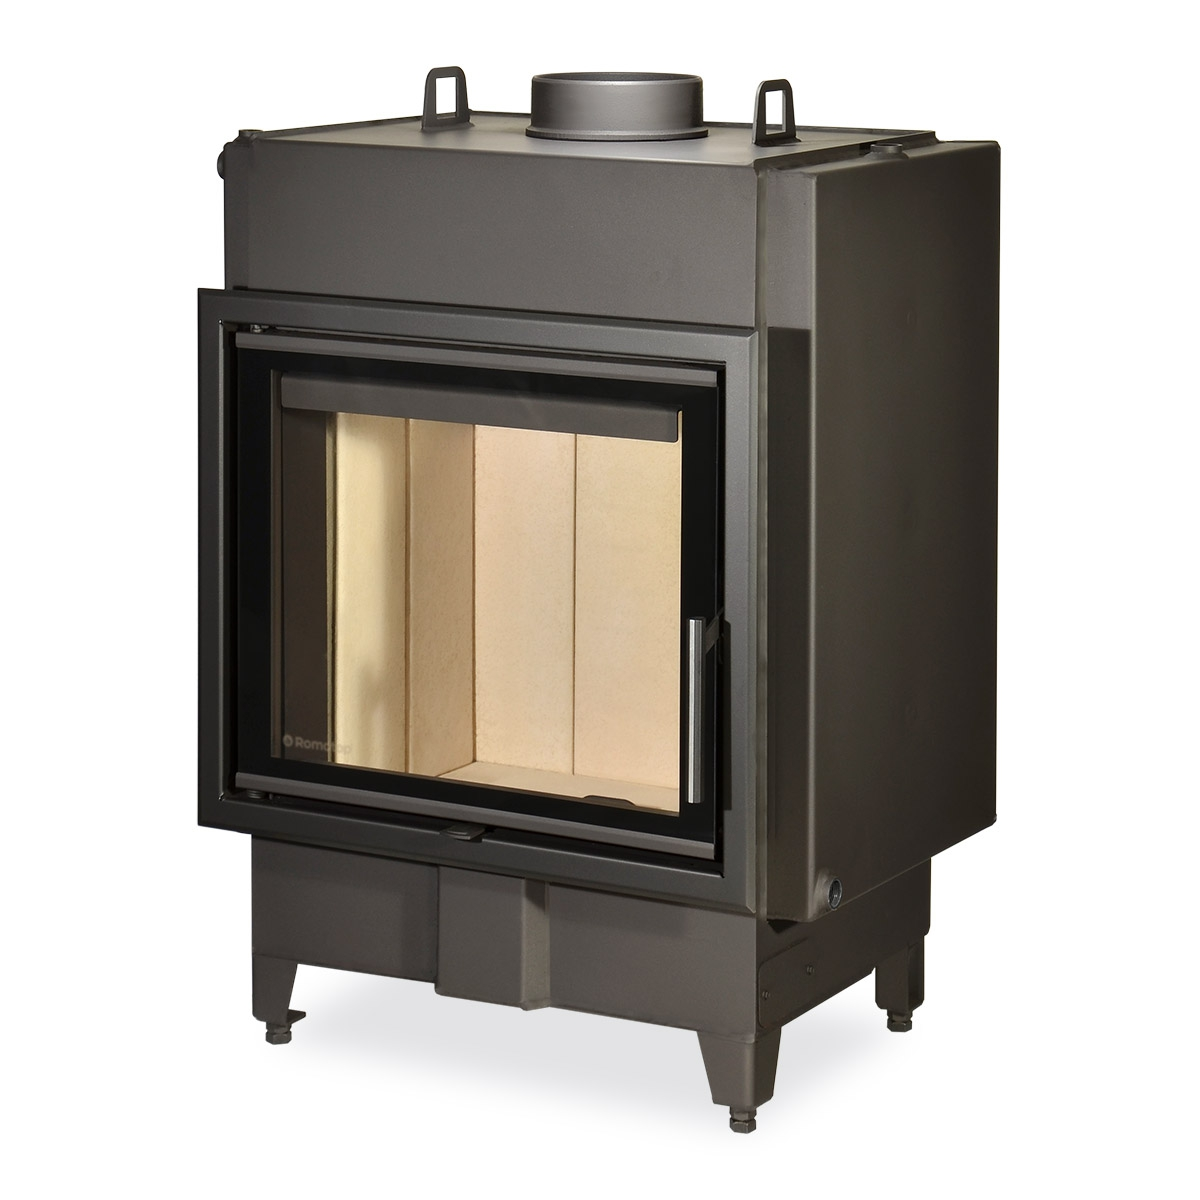 HEAT WA 2g 59.50.01 - fireplace insert with hot-water exchanger